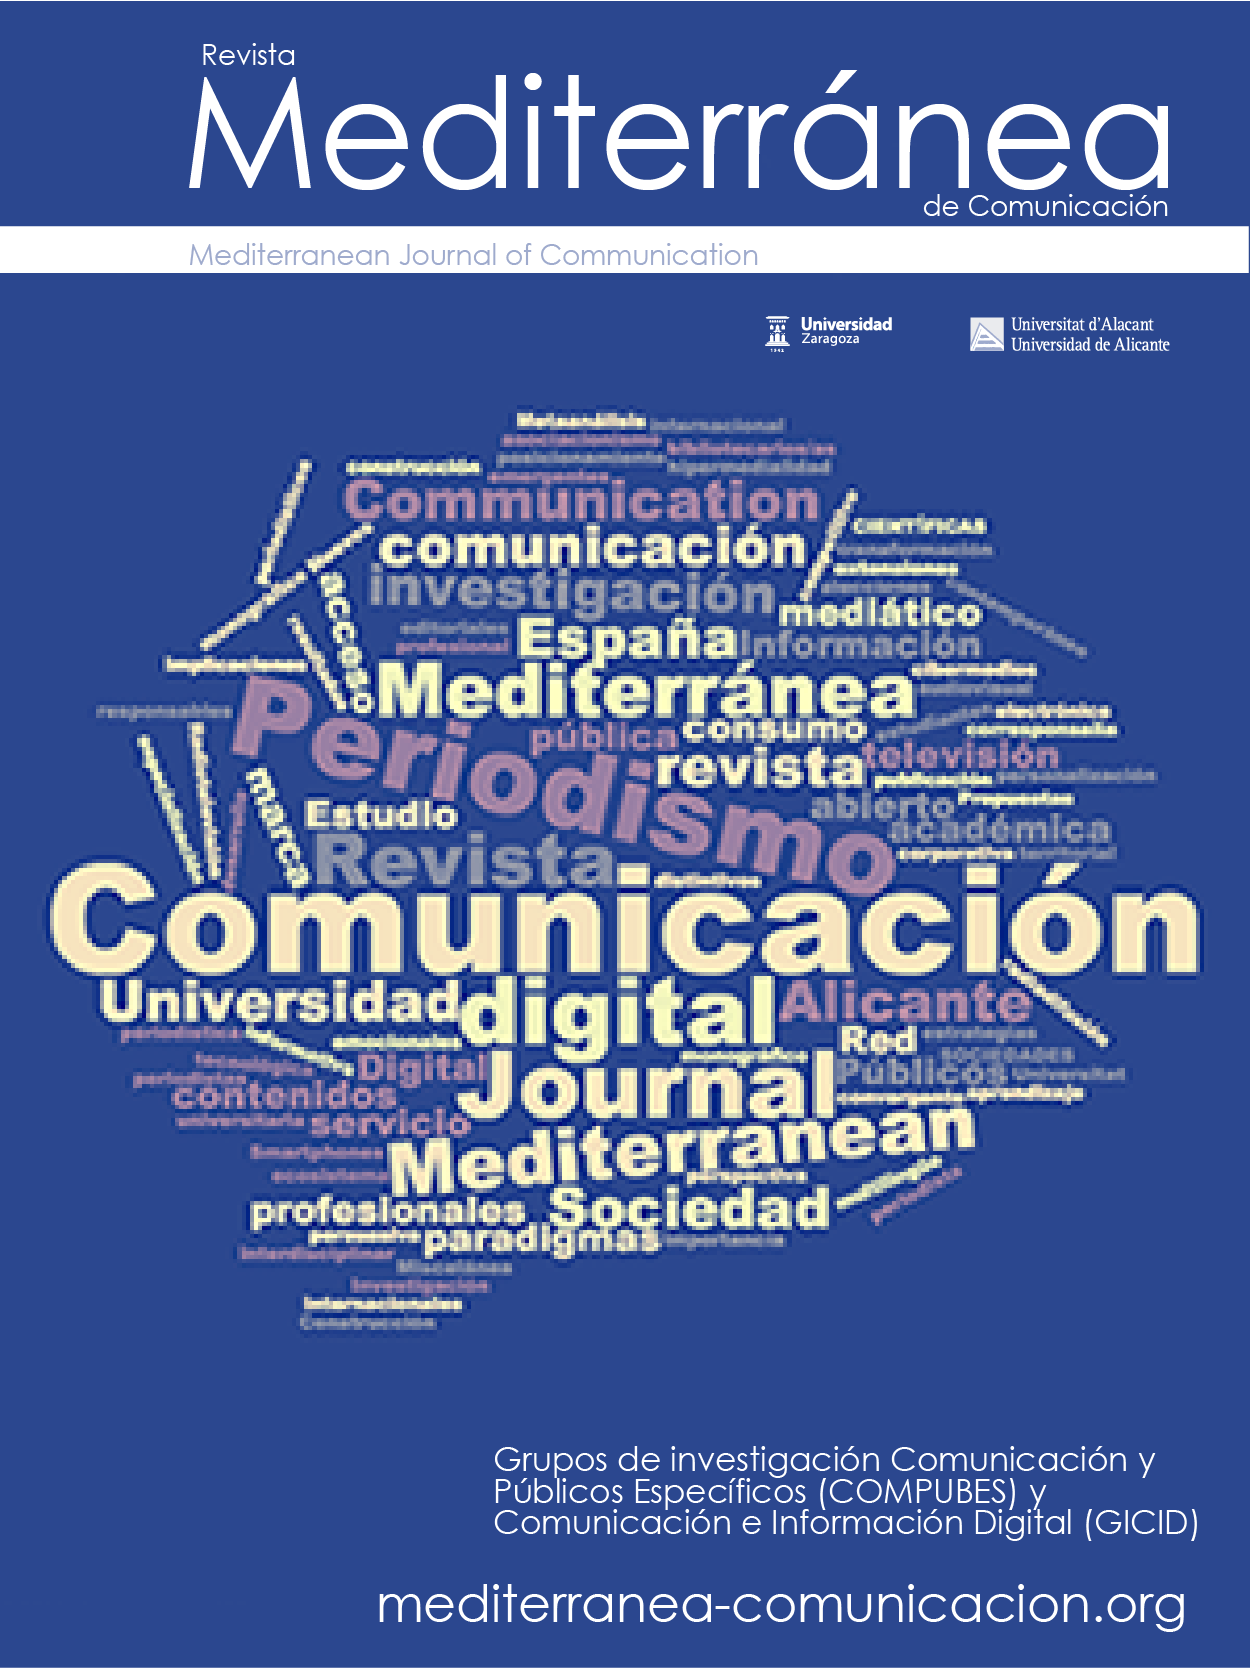 Revista Mediterránea de Comunicación / Mediterranean Journal of Communication